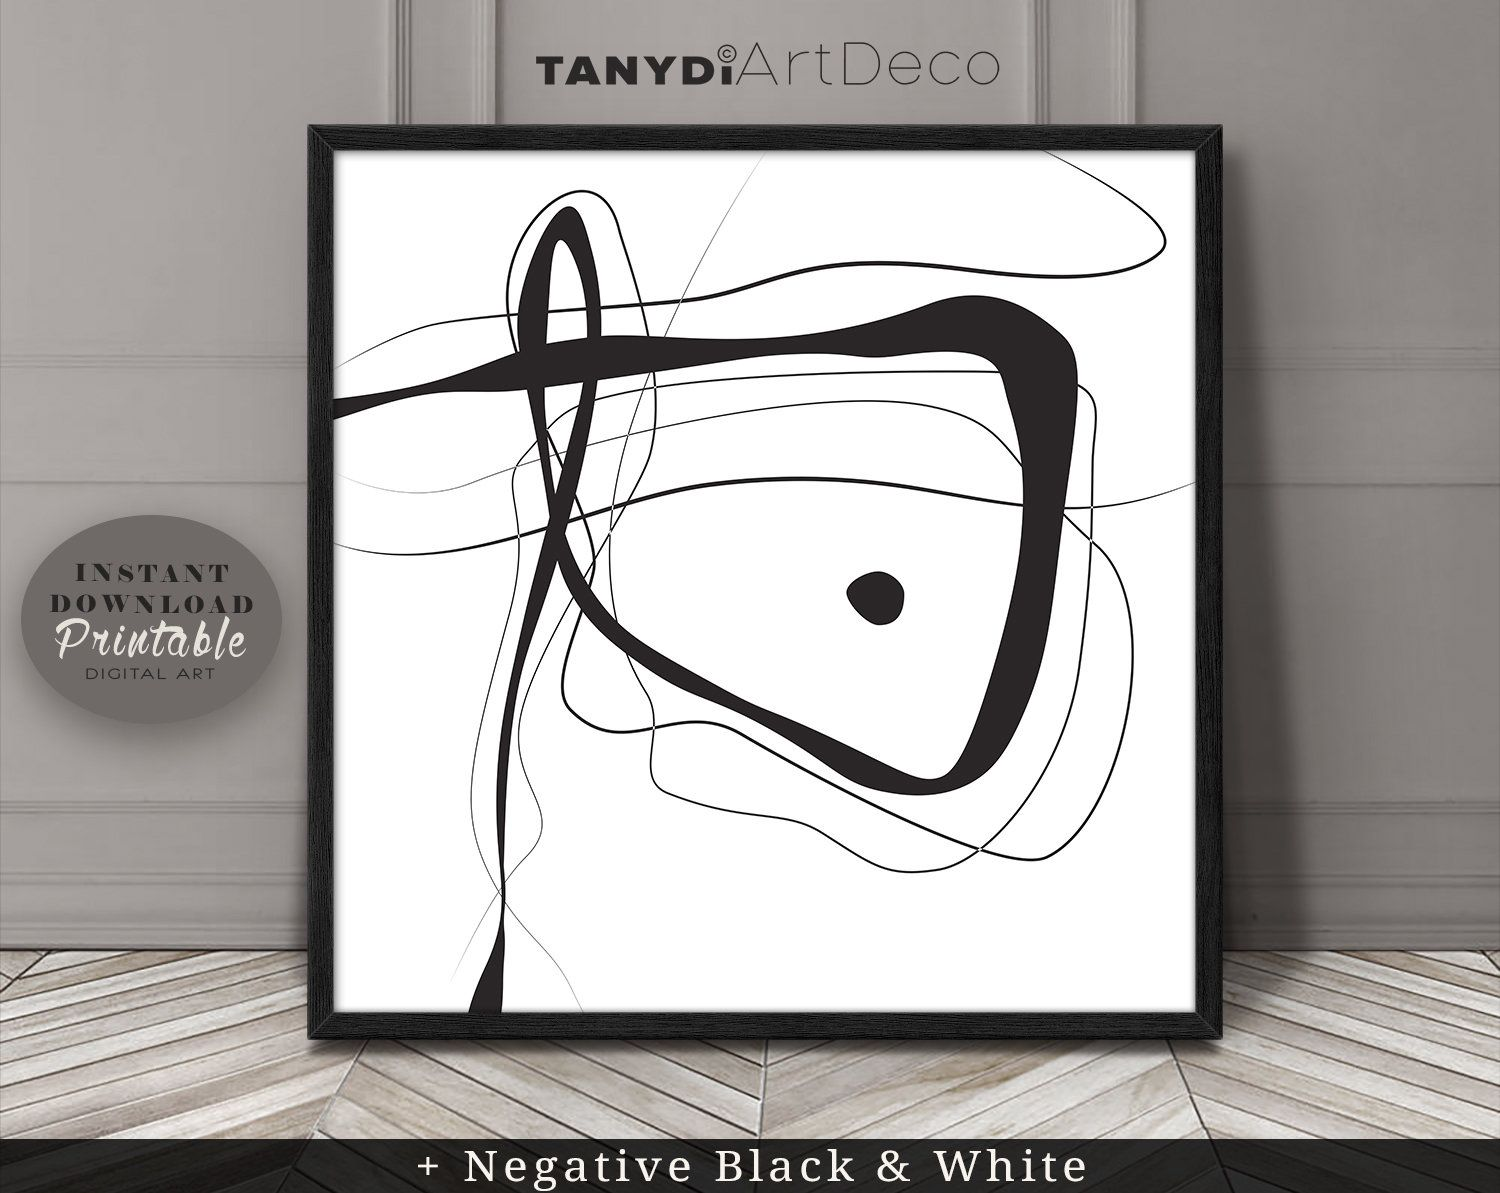 Abstract Line Art Simple Line Drawing In Black White 1